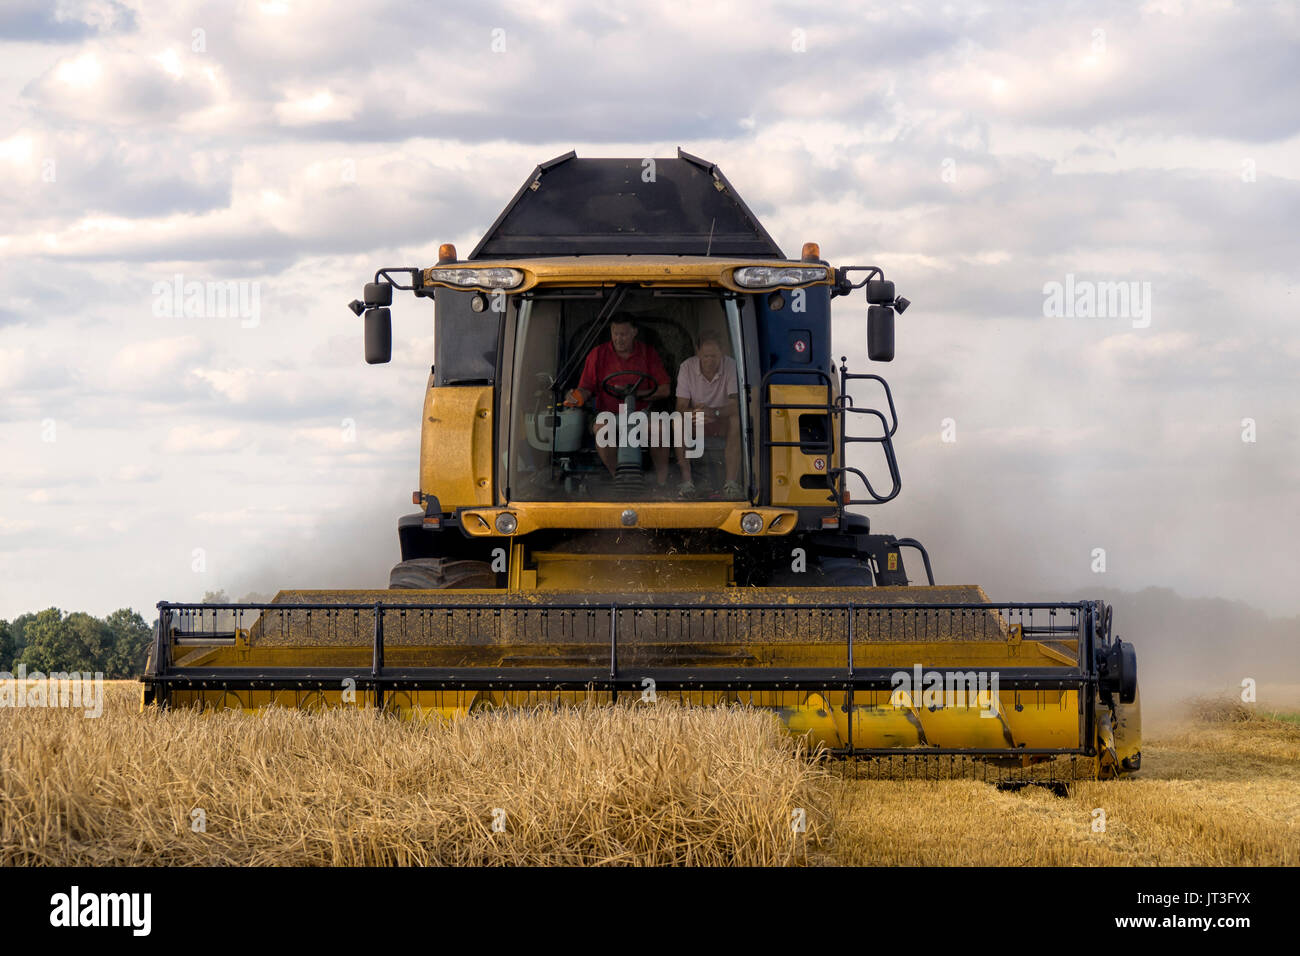 New Holland Combine Harvester at work harvesting wheat in rural Essex field - Stock Image